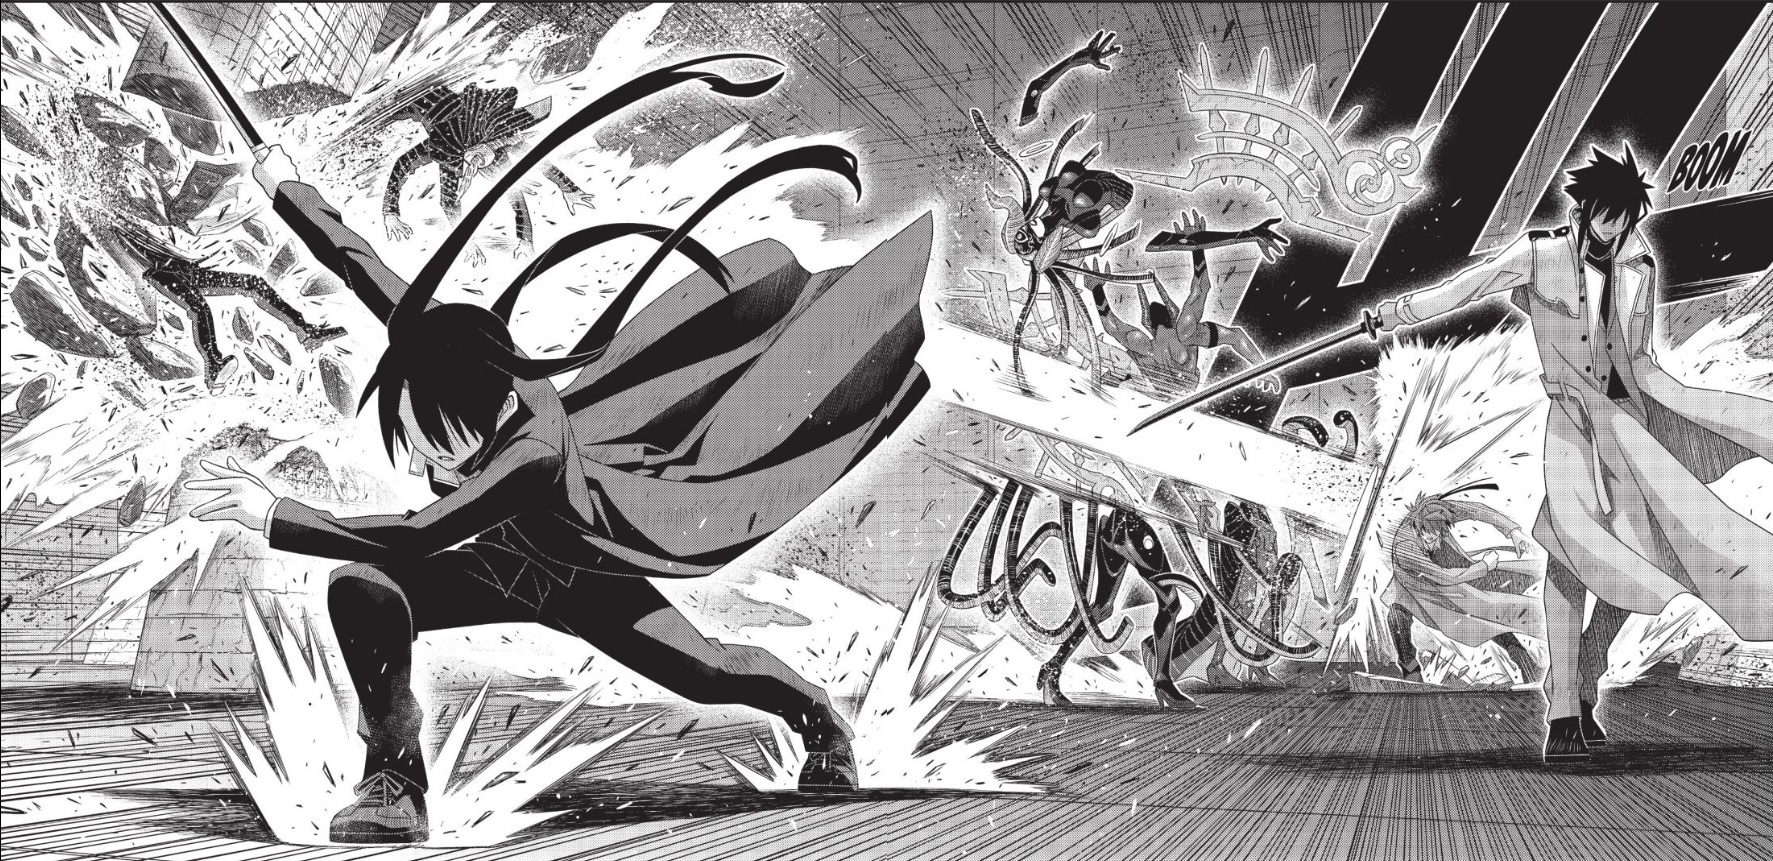 Featured image for UQ Holder Chapter 178 Manga Review (Rescue Rangers)